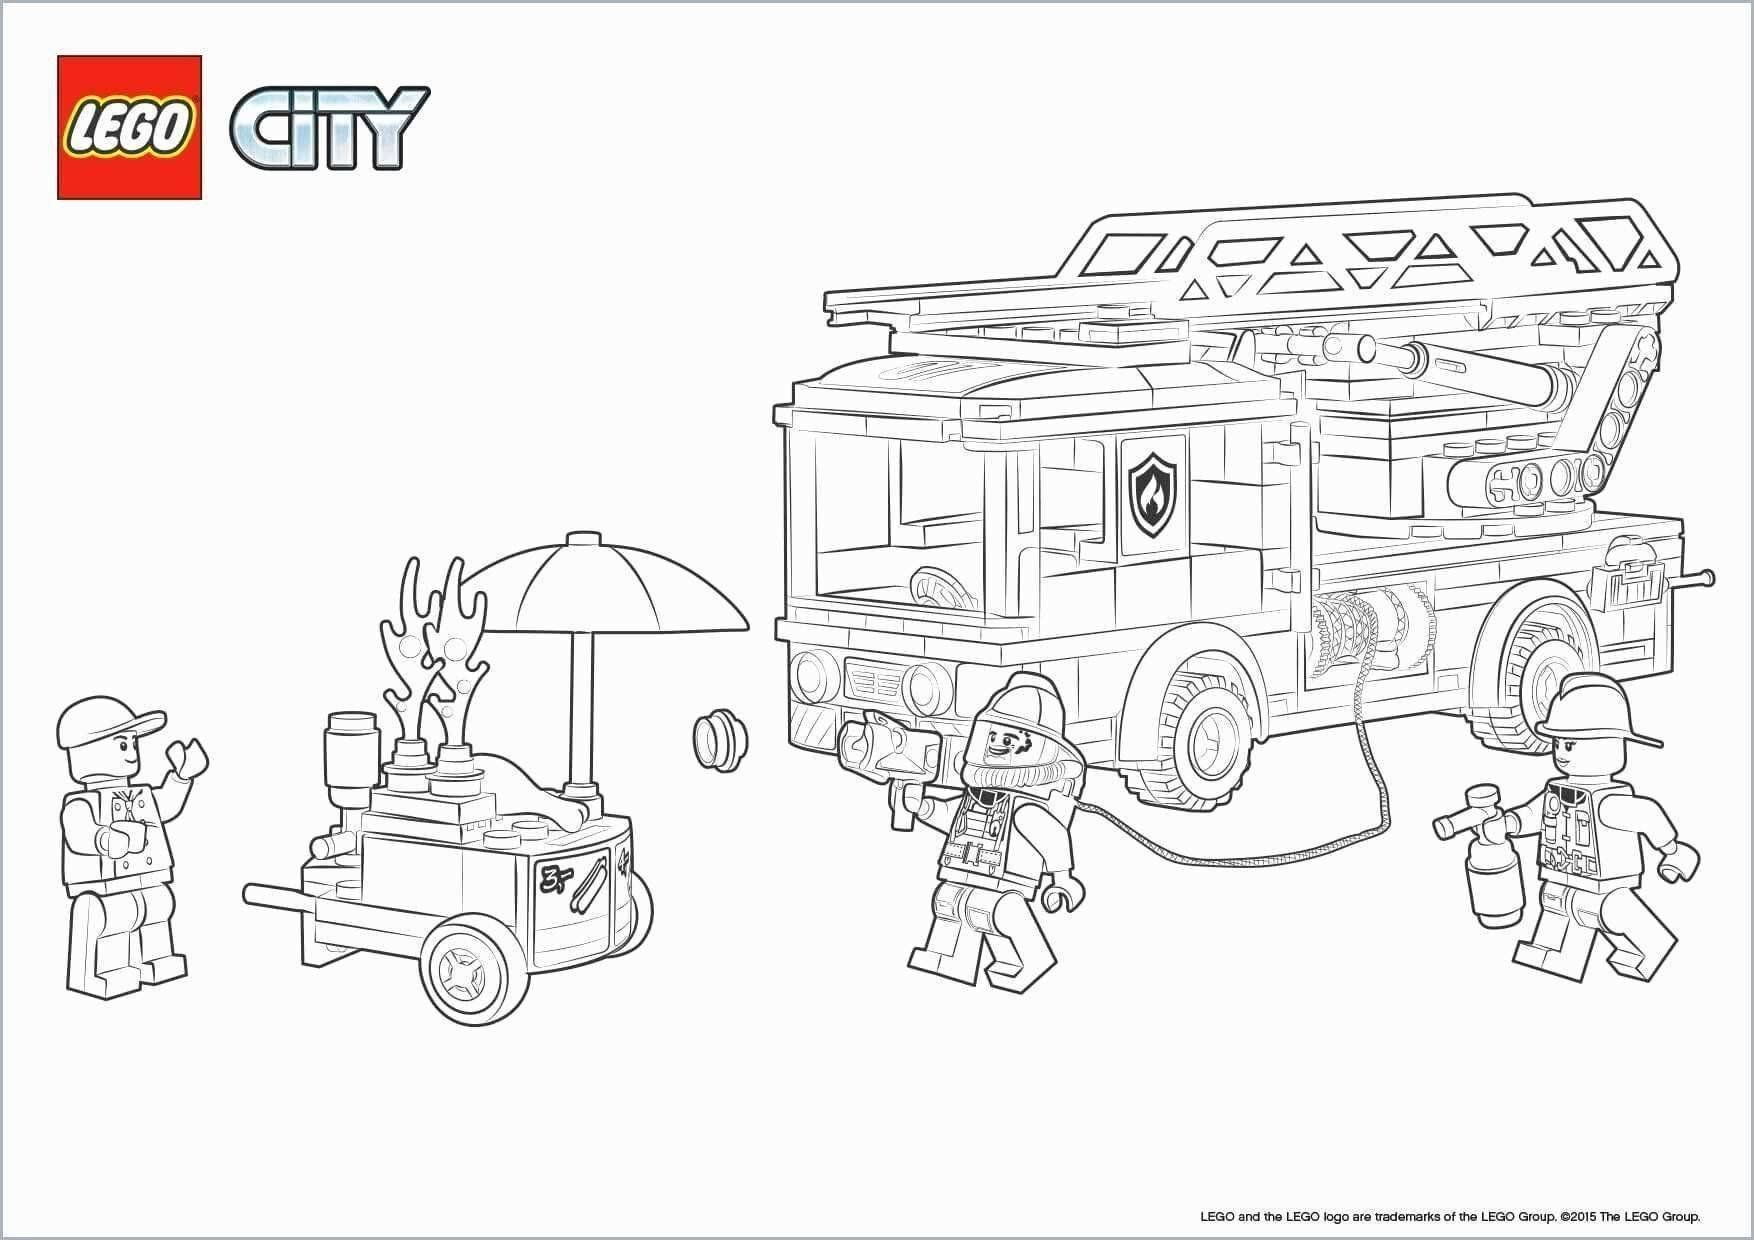 Lego City Coloring Pages Unique Lego City Coloring Pages Lego Coloring Pages Truck Coloring Pages Coloring Pages